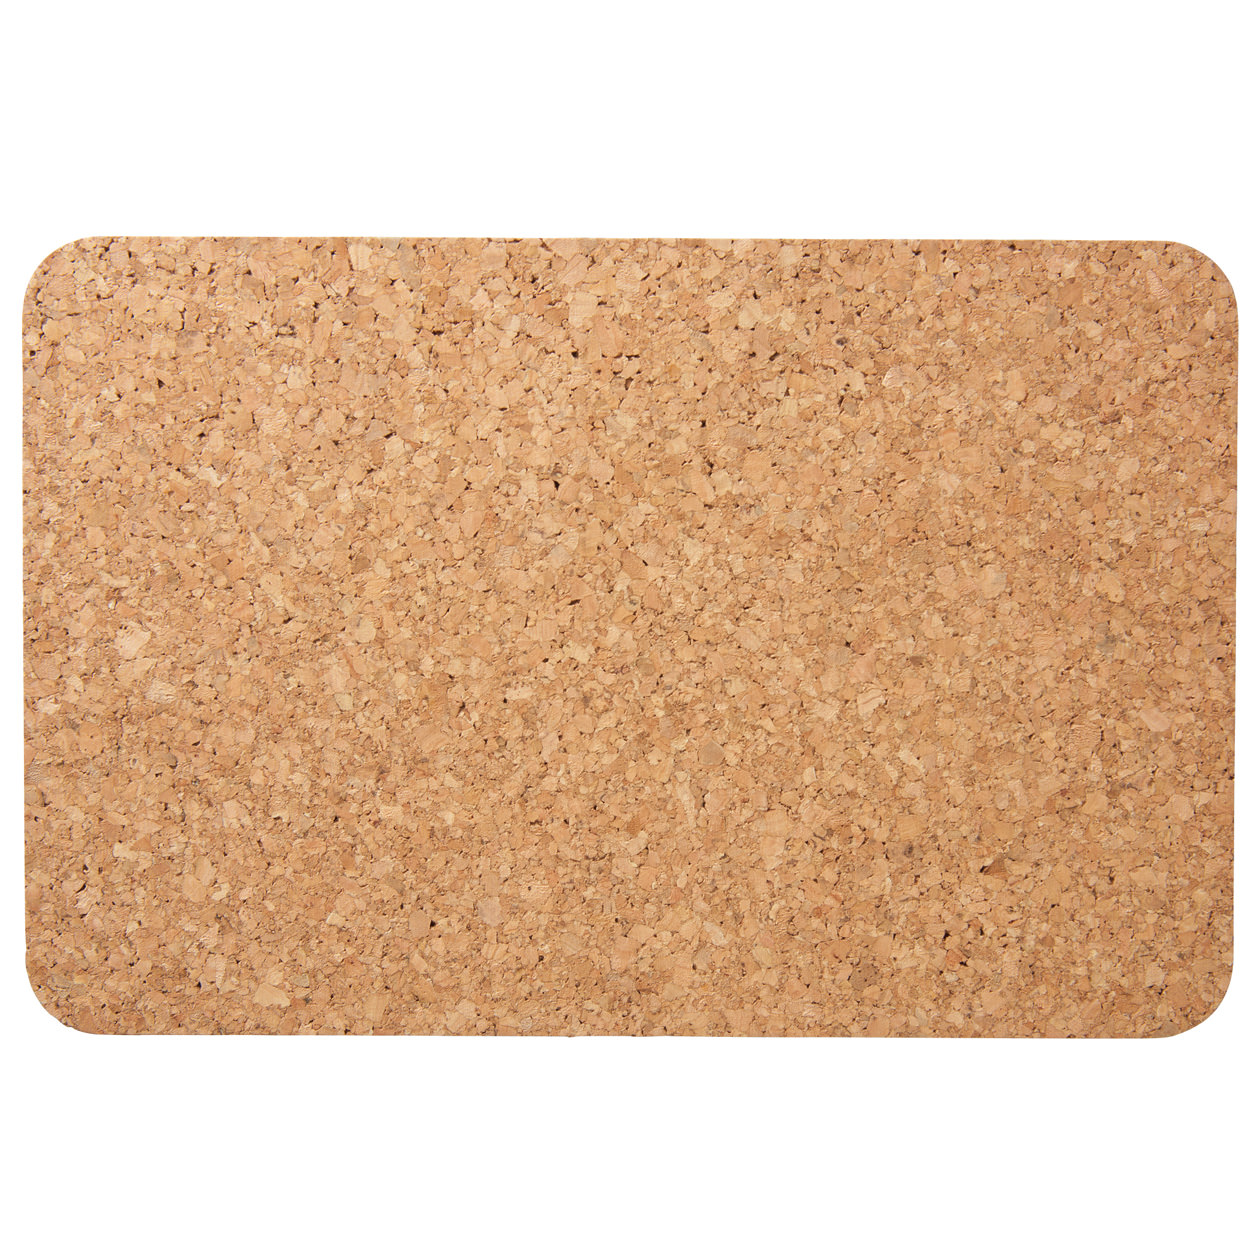 CORK TEA MAT / 2PCS